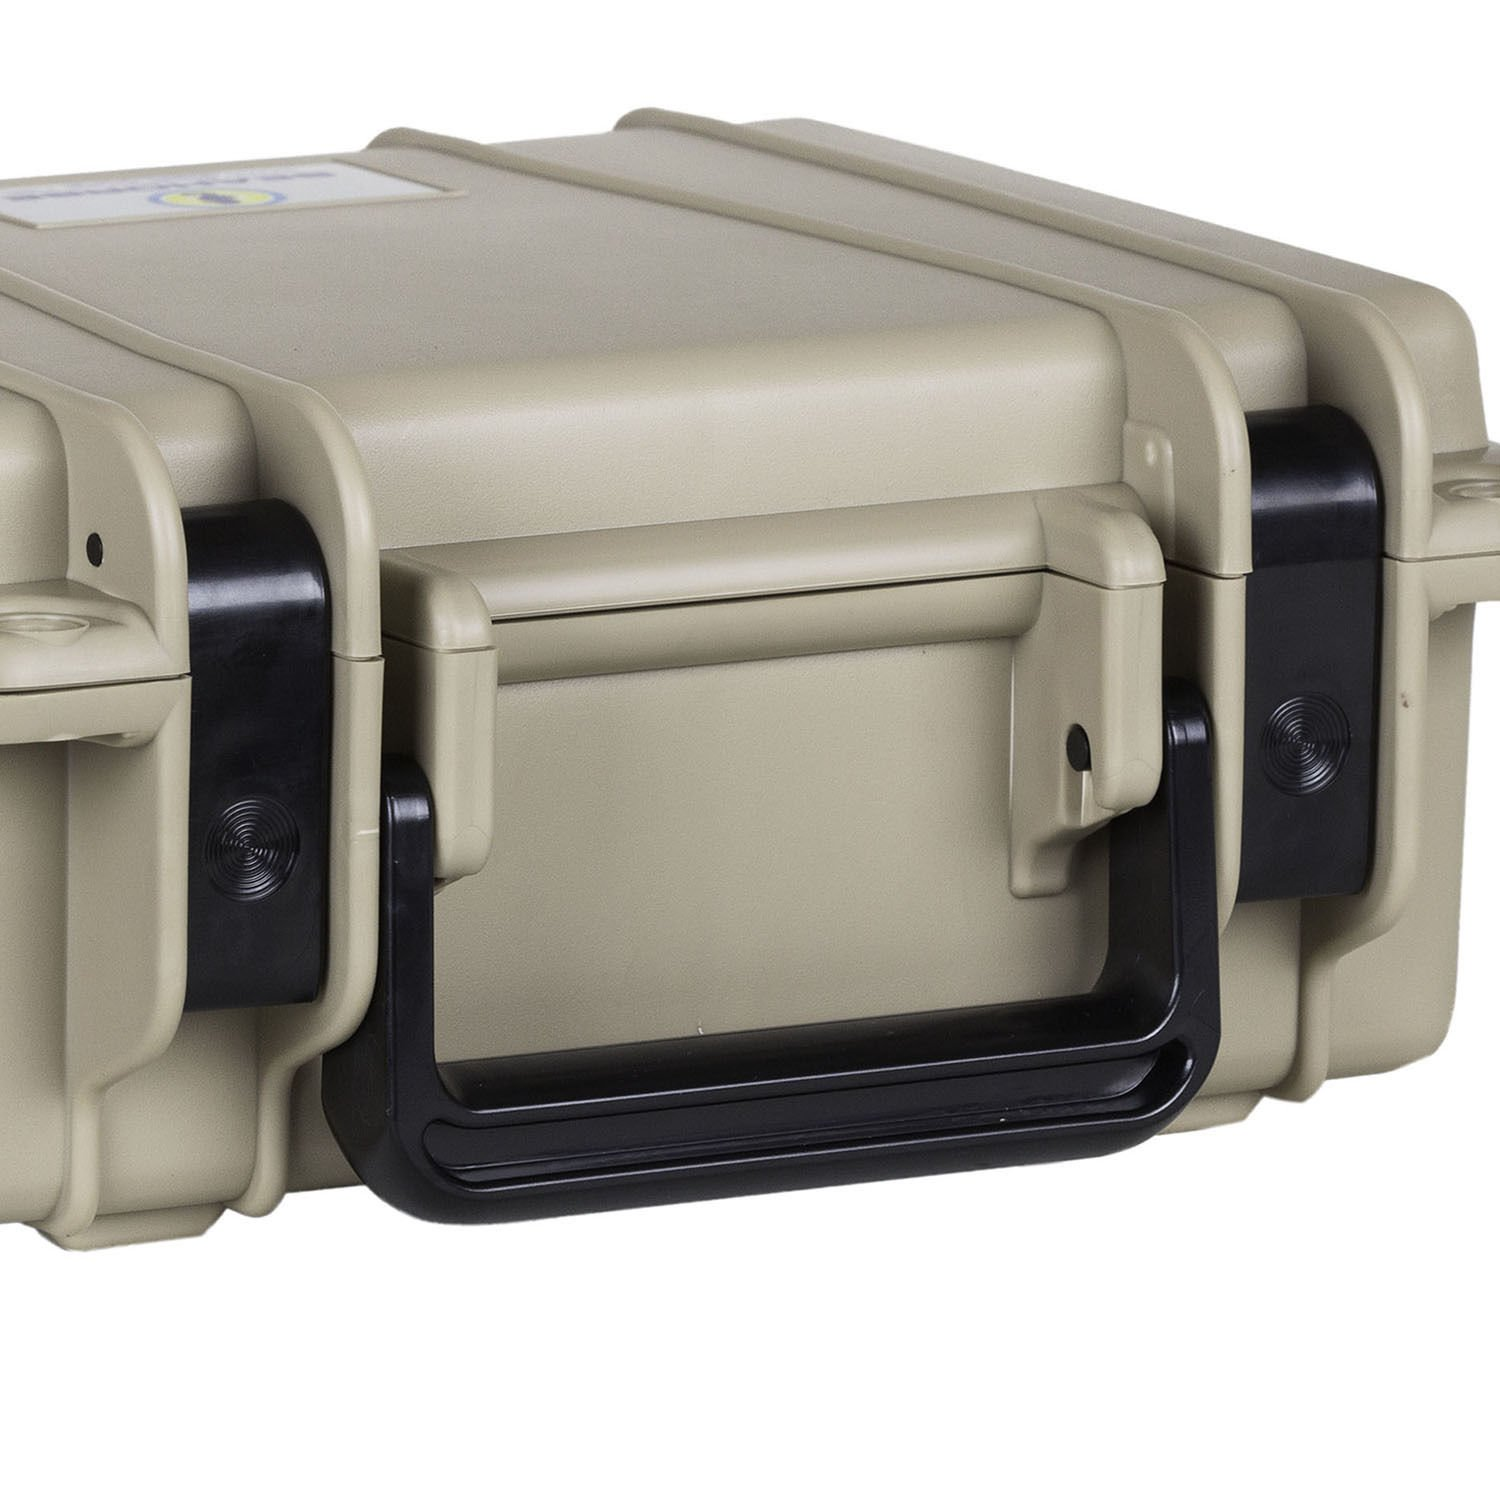 MRT SUPPLY Watertight Protective Equipment Case Without Foam, Desert Tan with Ebook